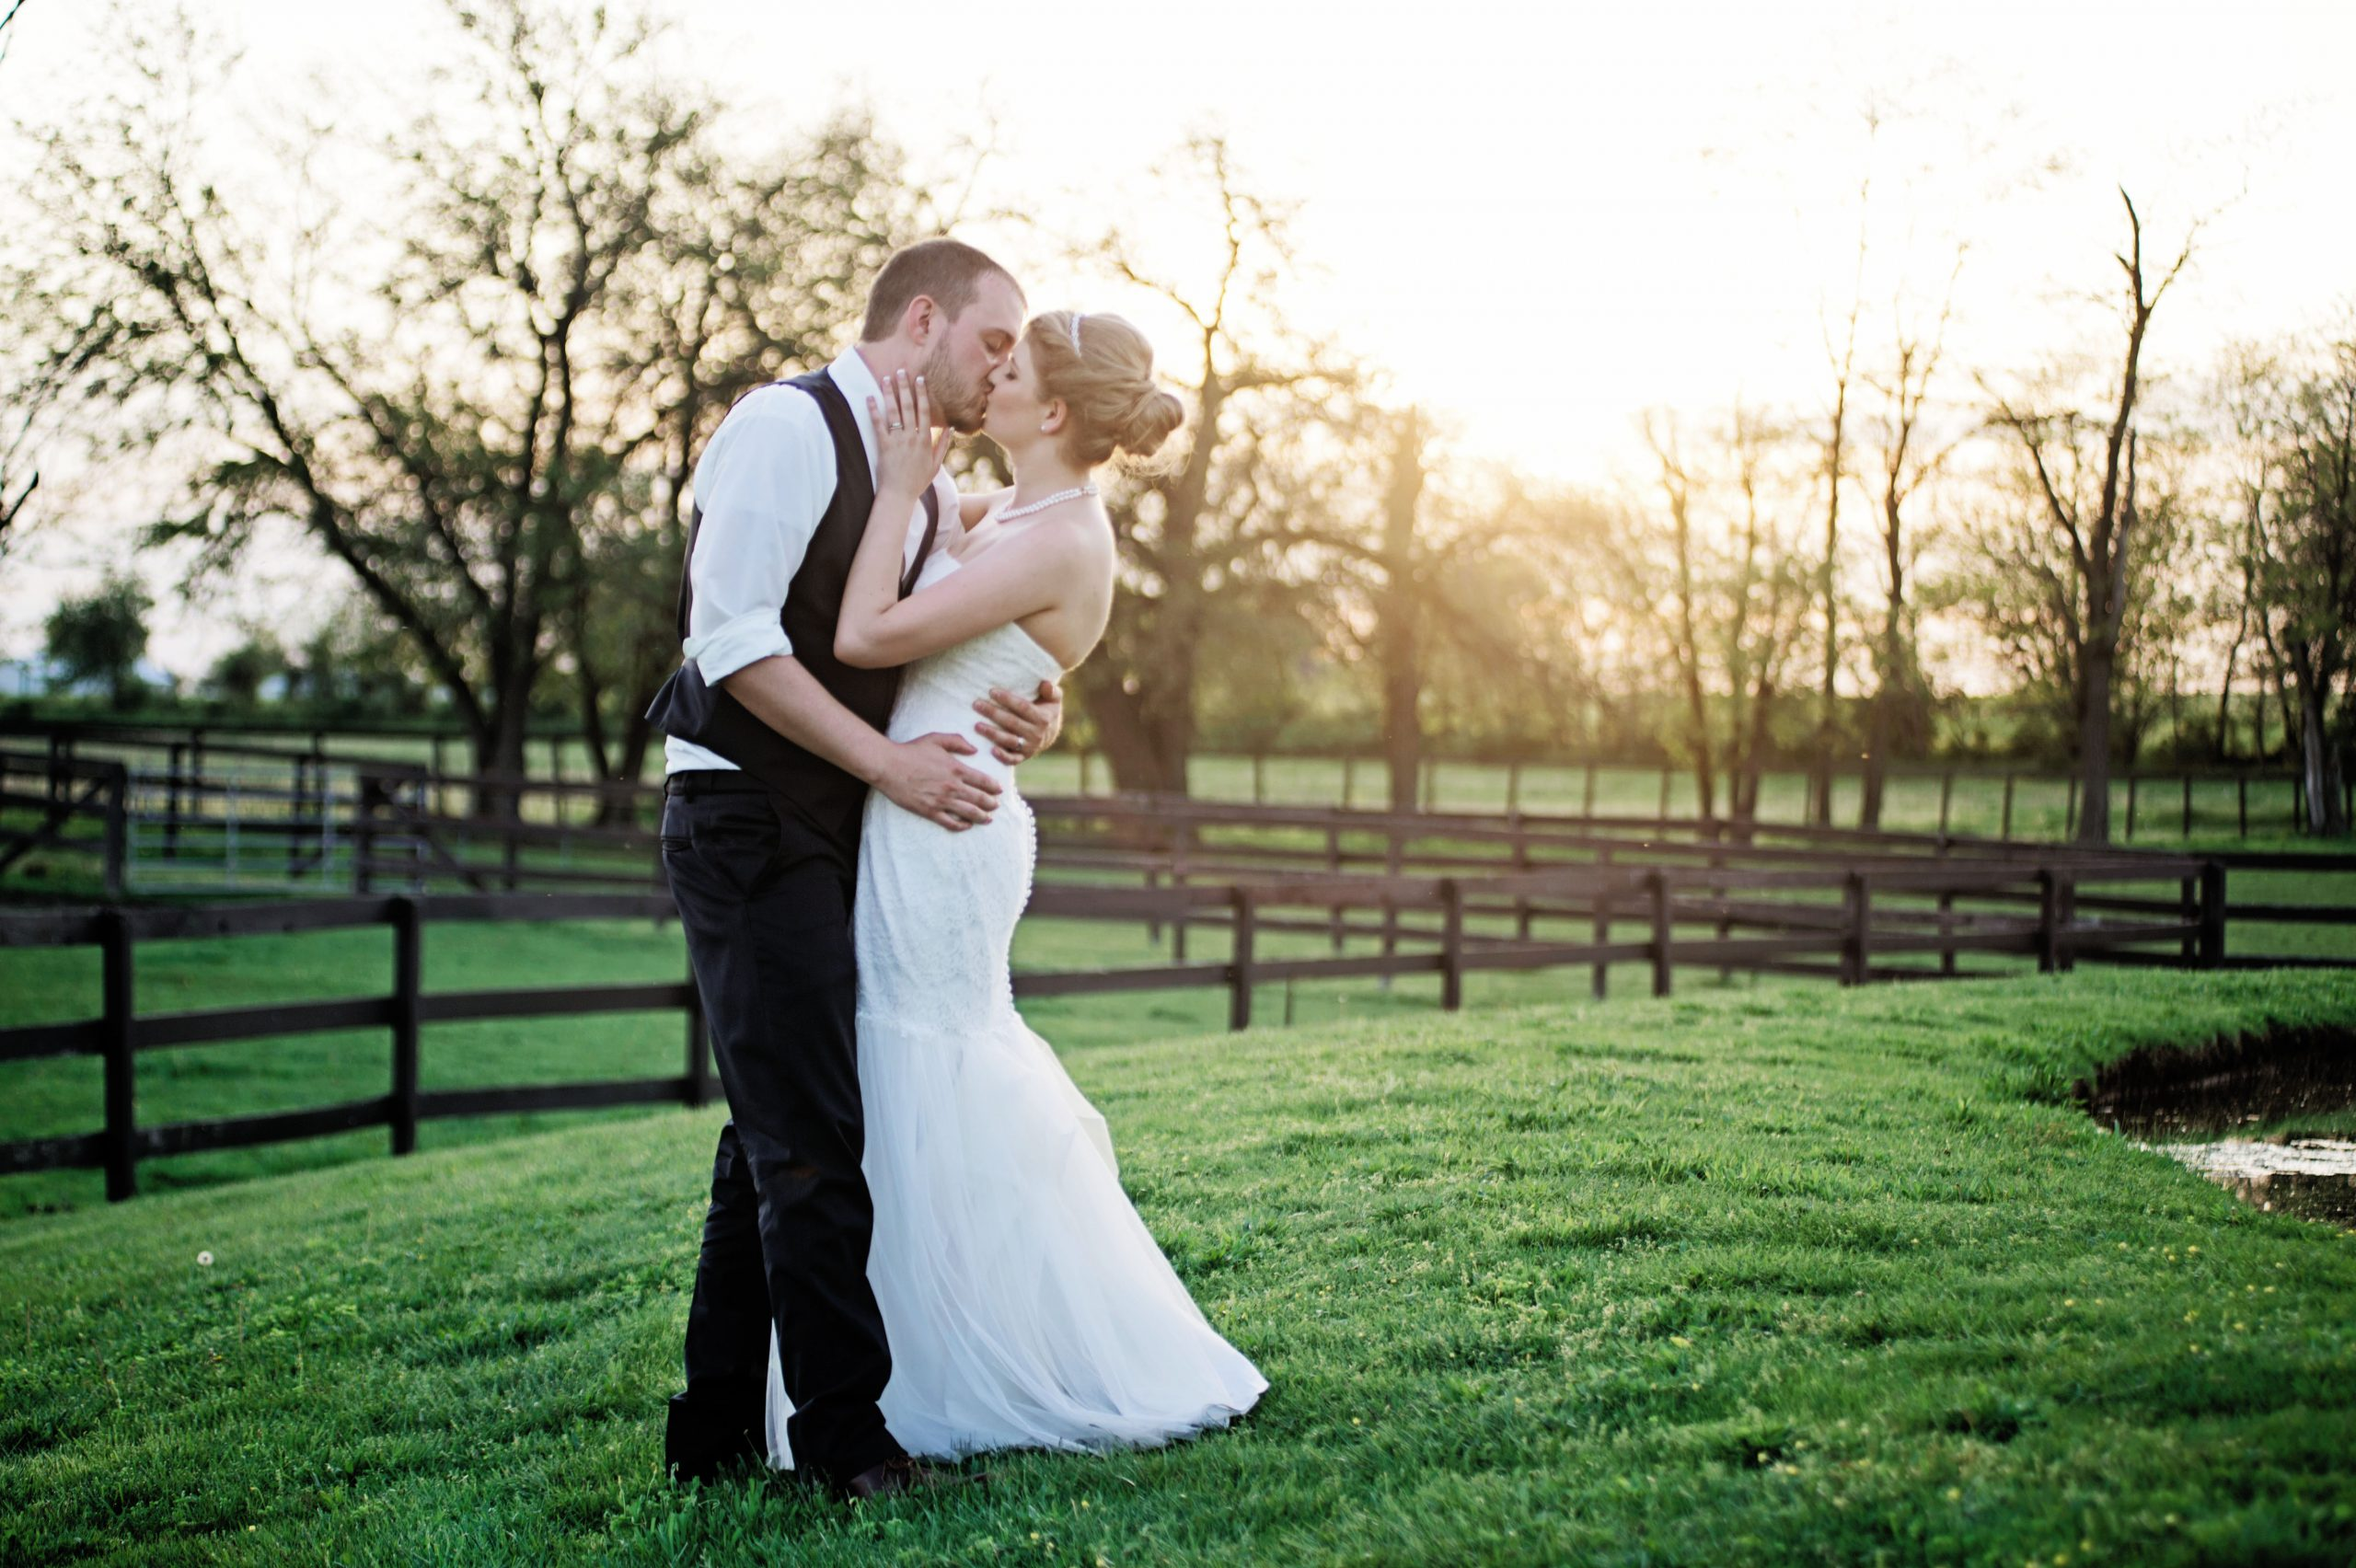 Lakeview Farms of York, PA proved to be the perfect wedding destination for Kady and Ricky. Horses, stables and plenty of land for wedding-scape, the two explred the property with Photographer Kelsey Kinard of Lovefusion Photography. This photo will live on for generations. Timeless. Featured on Dream Weddings.